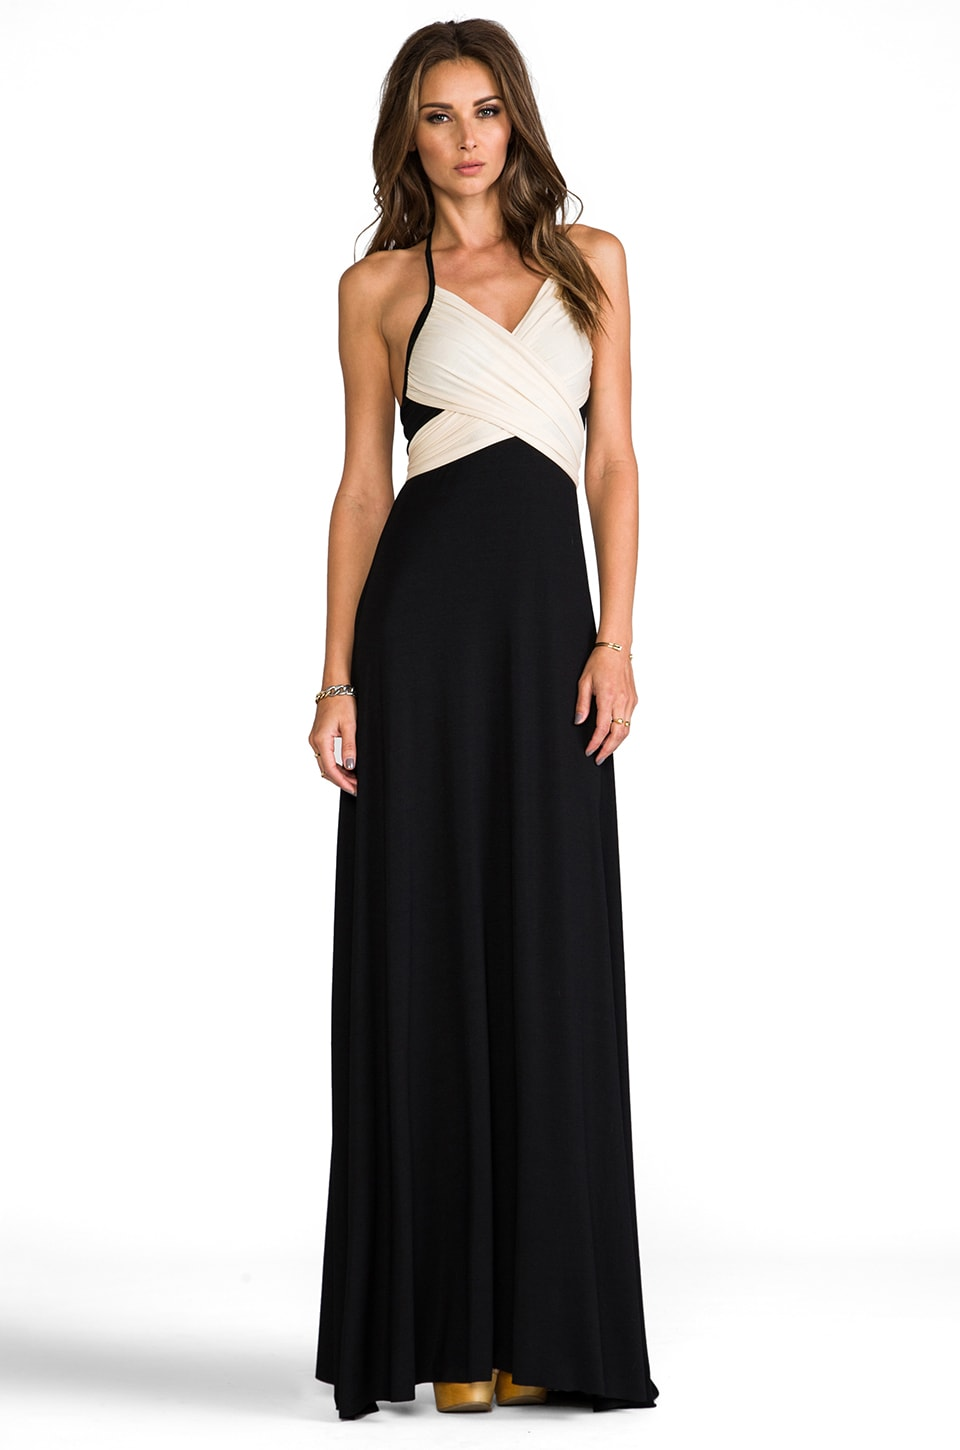 Rachel Pally Two Tone Halter Dress in Black & Cream